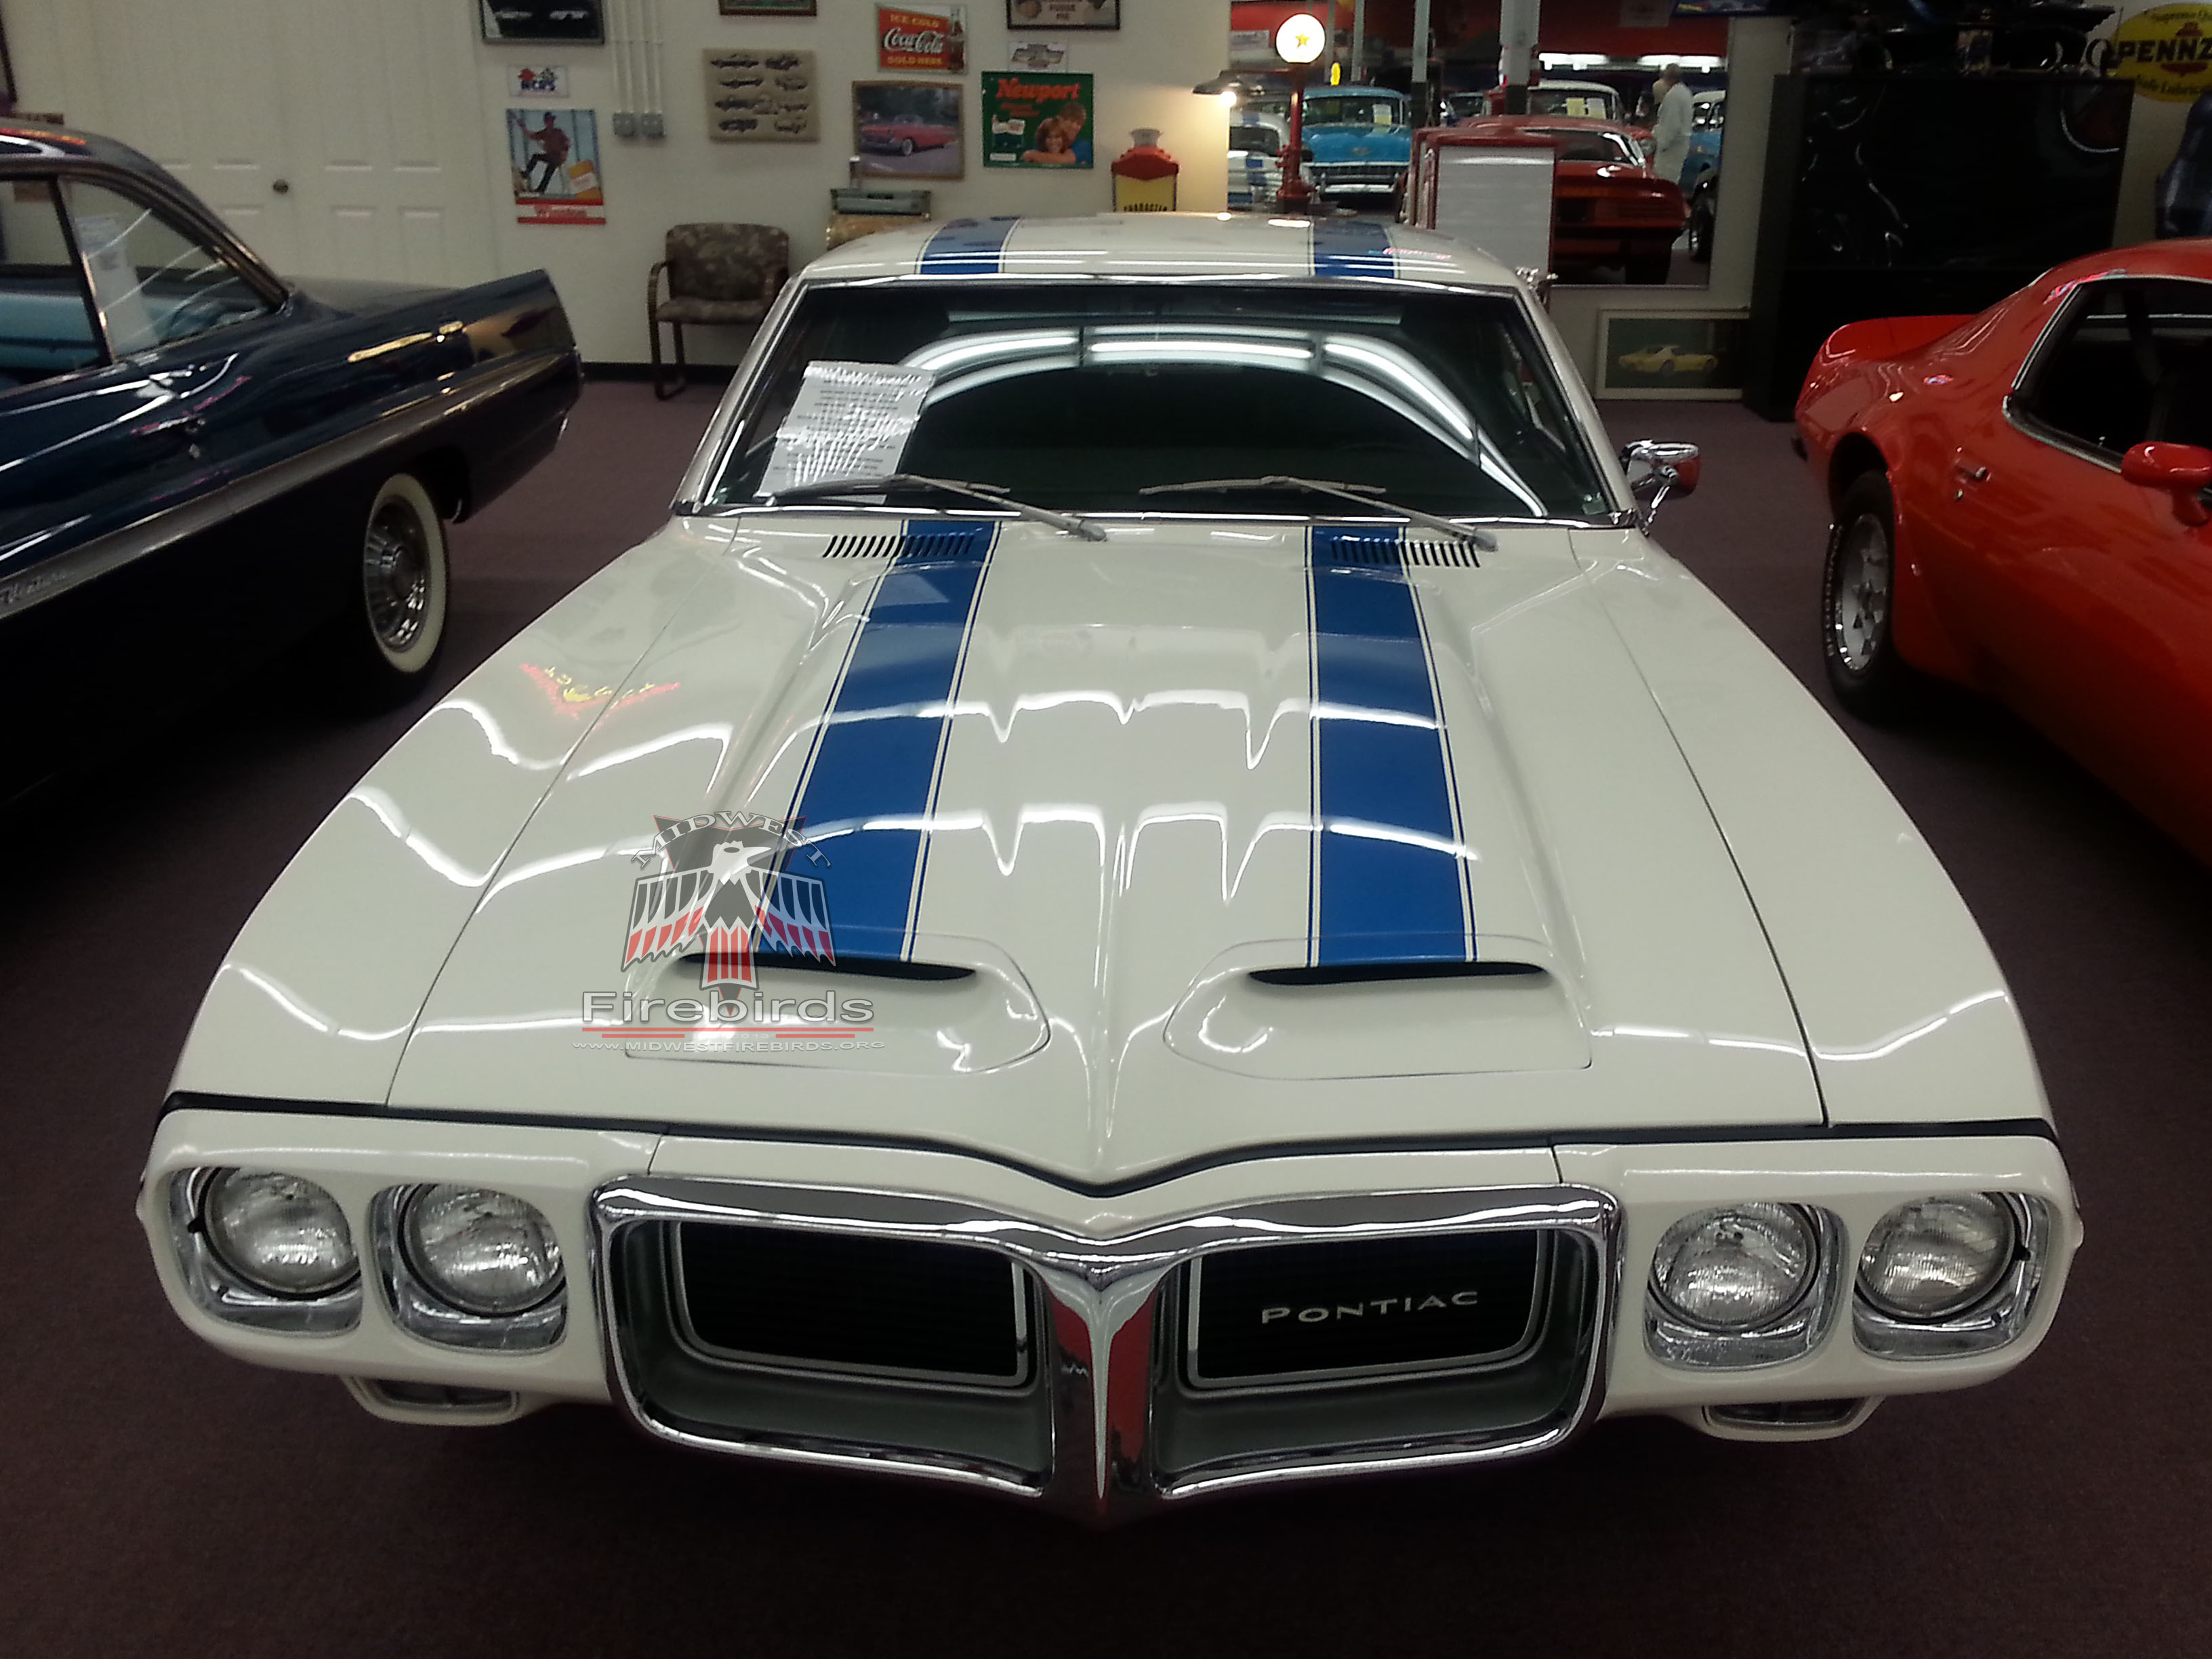 This 1969 Pontiac Firebird Trans Am coupe is displayed at the Muscle Car City Museum, in Punta Gorda, FL.